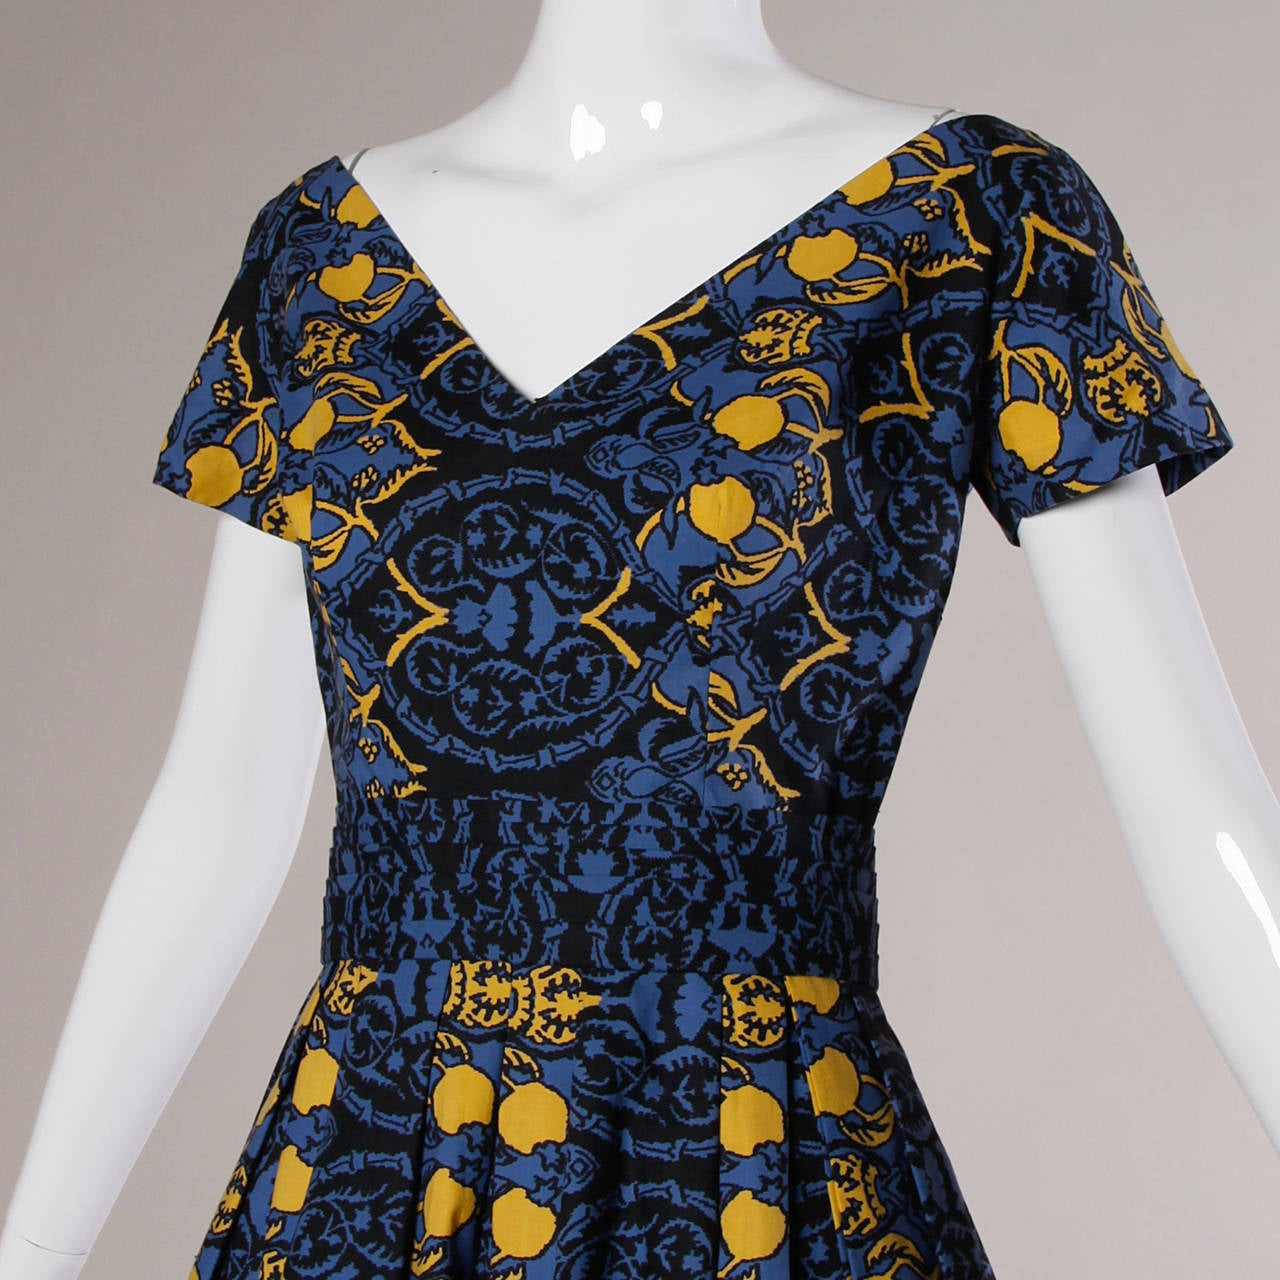 1950s vintage cotton dress with a blue and yellow Provincial screen print and custom stitching. From a French estate!  Details:  Unlined Matching Belt Back Metal Zip and Hook Closure Color: Indigo/ Bright Yellow/ Black Fabric: